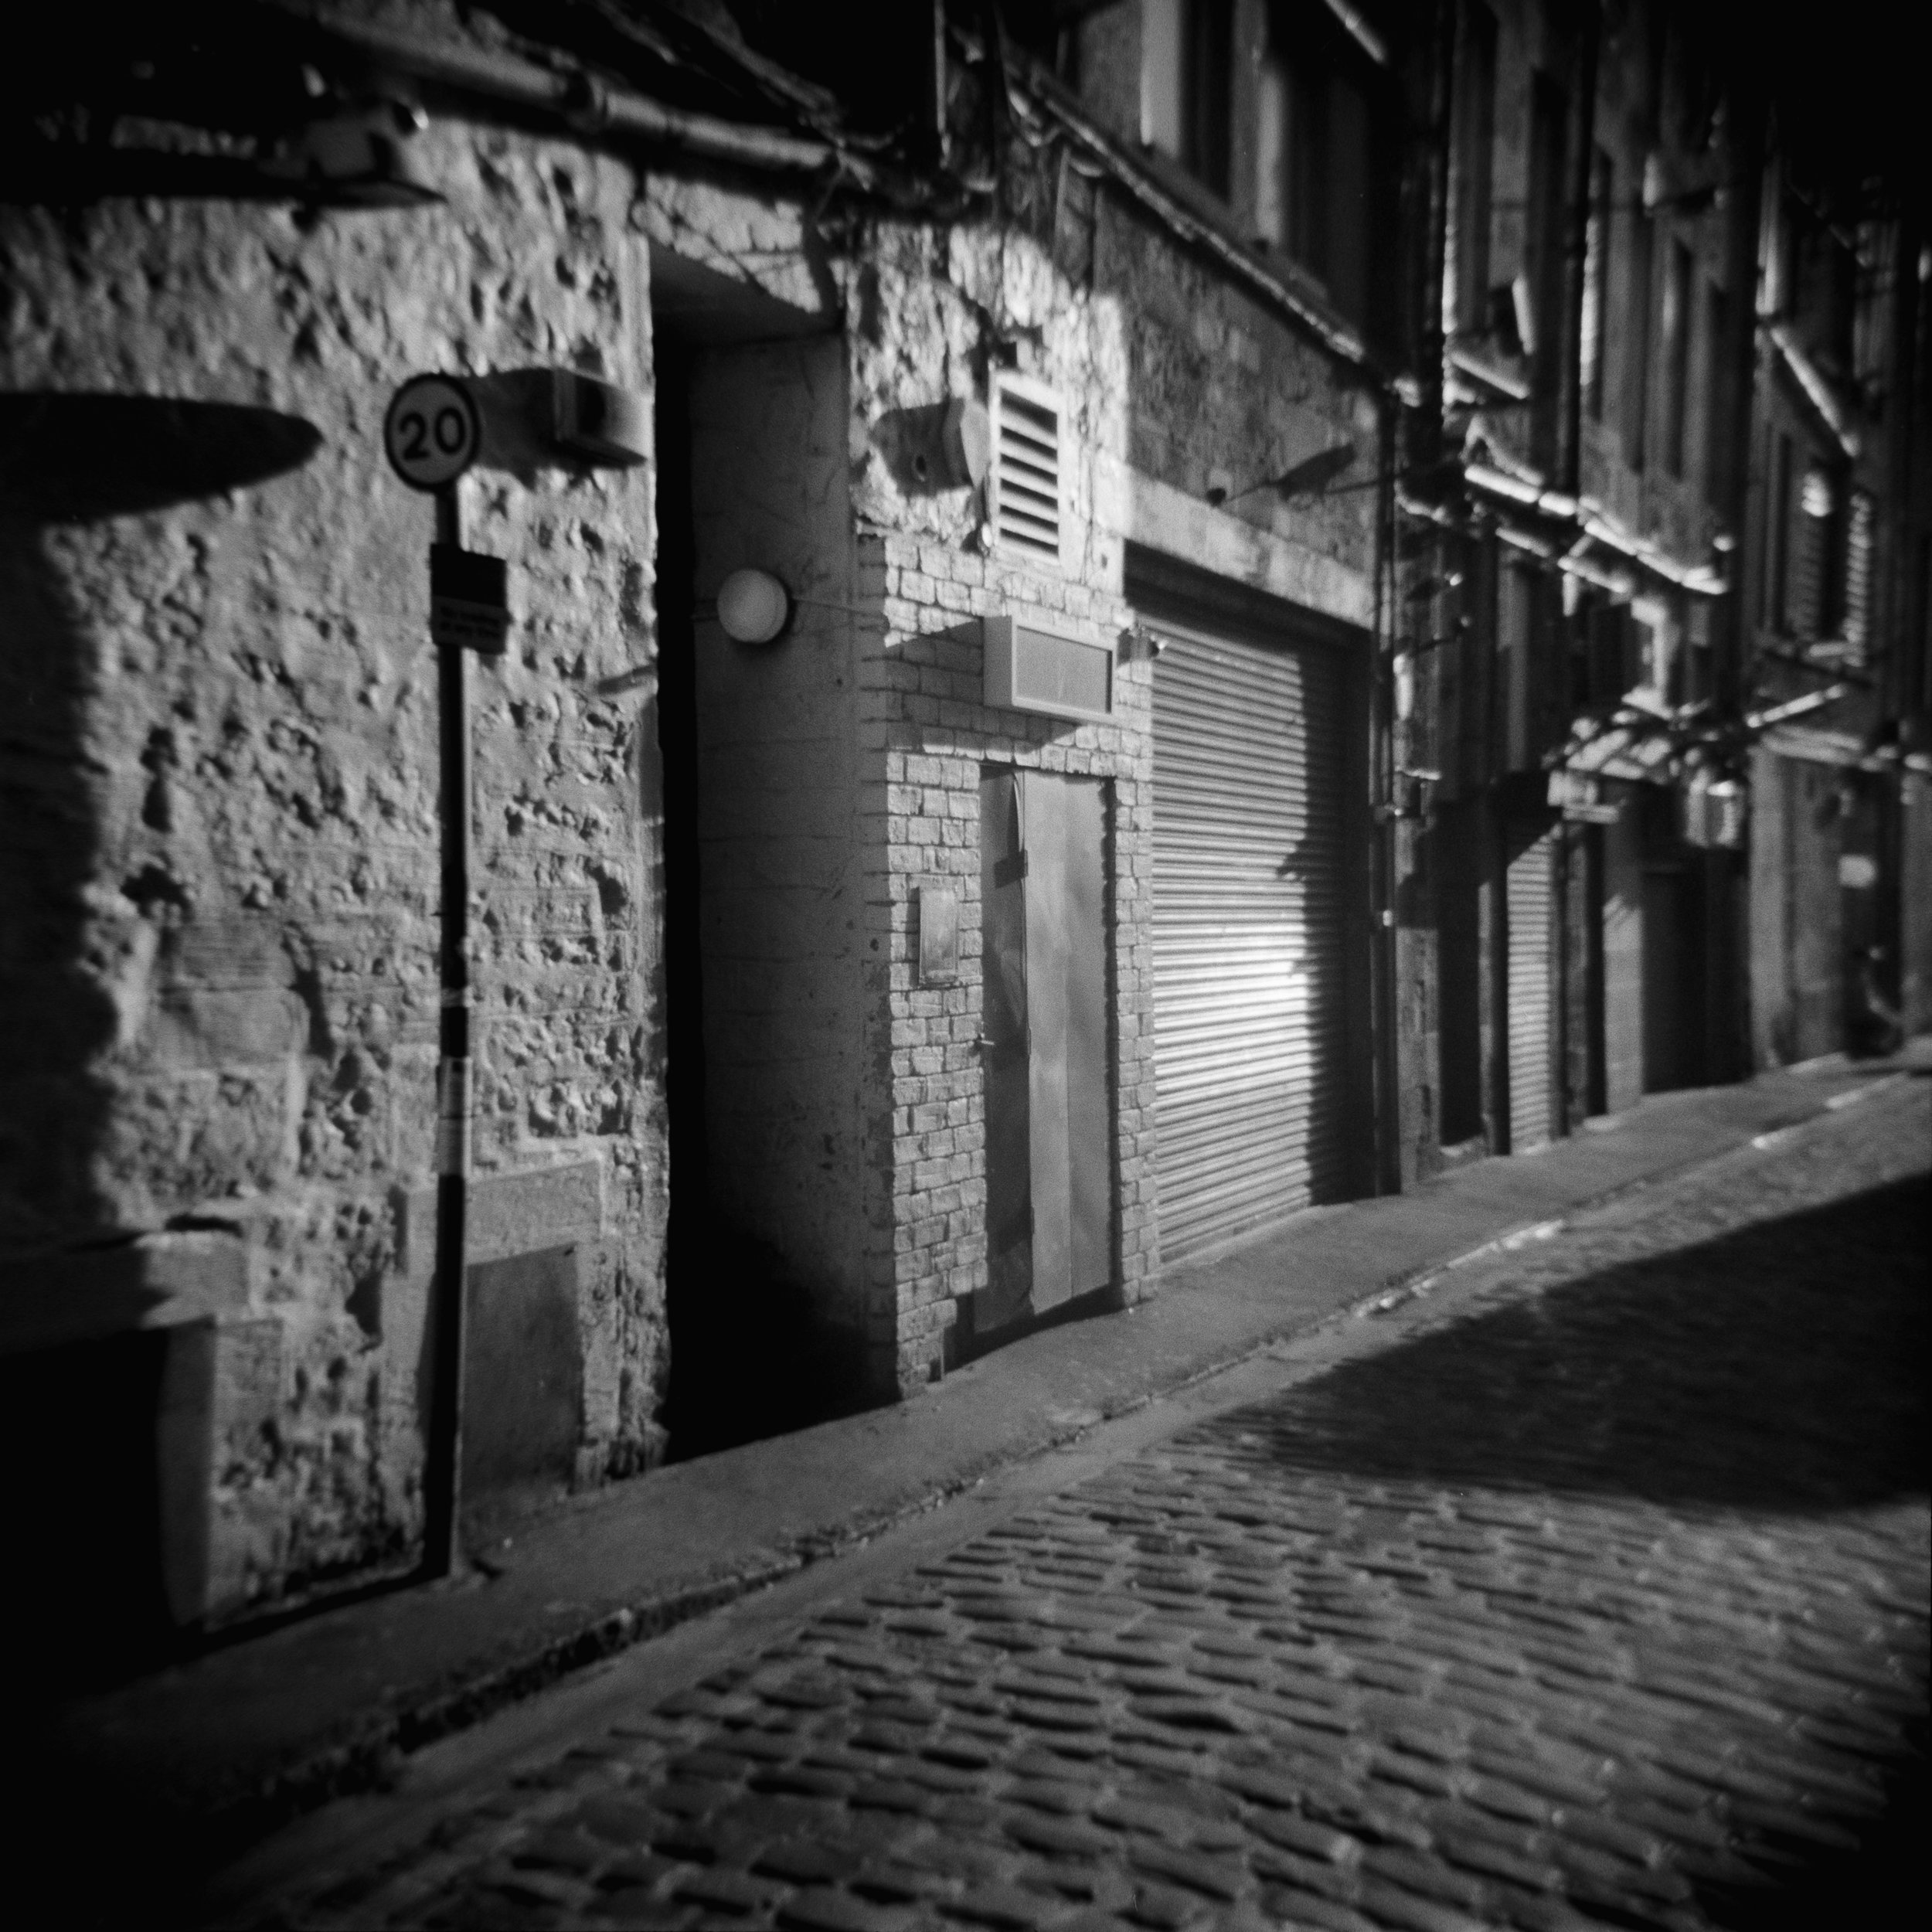 This is what happens when you expose for the highlights with an ancient camera (an Agfa Super Isolette from the 1950s). I might to have to get it checked out as it's usually very sharp and doesn't distort quite this much but on the other hand there's an awful lot of straight lines in the frame, many in the out of focus areas which will advertise any problems.  As an aside it's also my first foray into DSLR scanning, seems to be working well and it's super fast compared to a flatbed. If you use an iPad instead of a light box like this scan the pixels give you a fairly neat newsprint type effect.